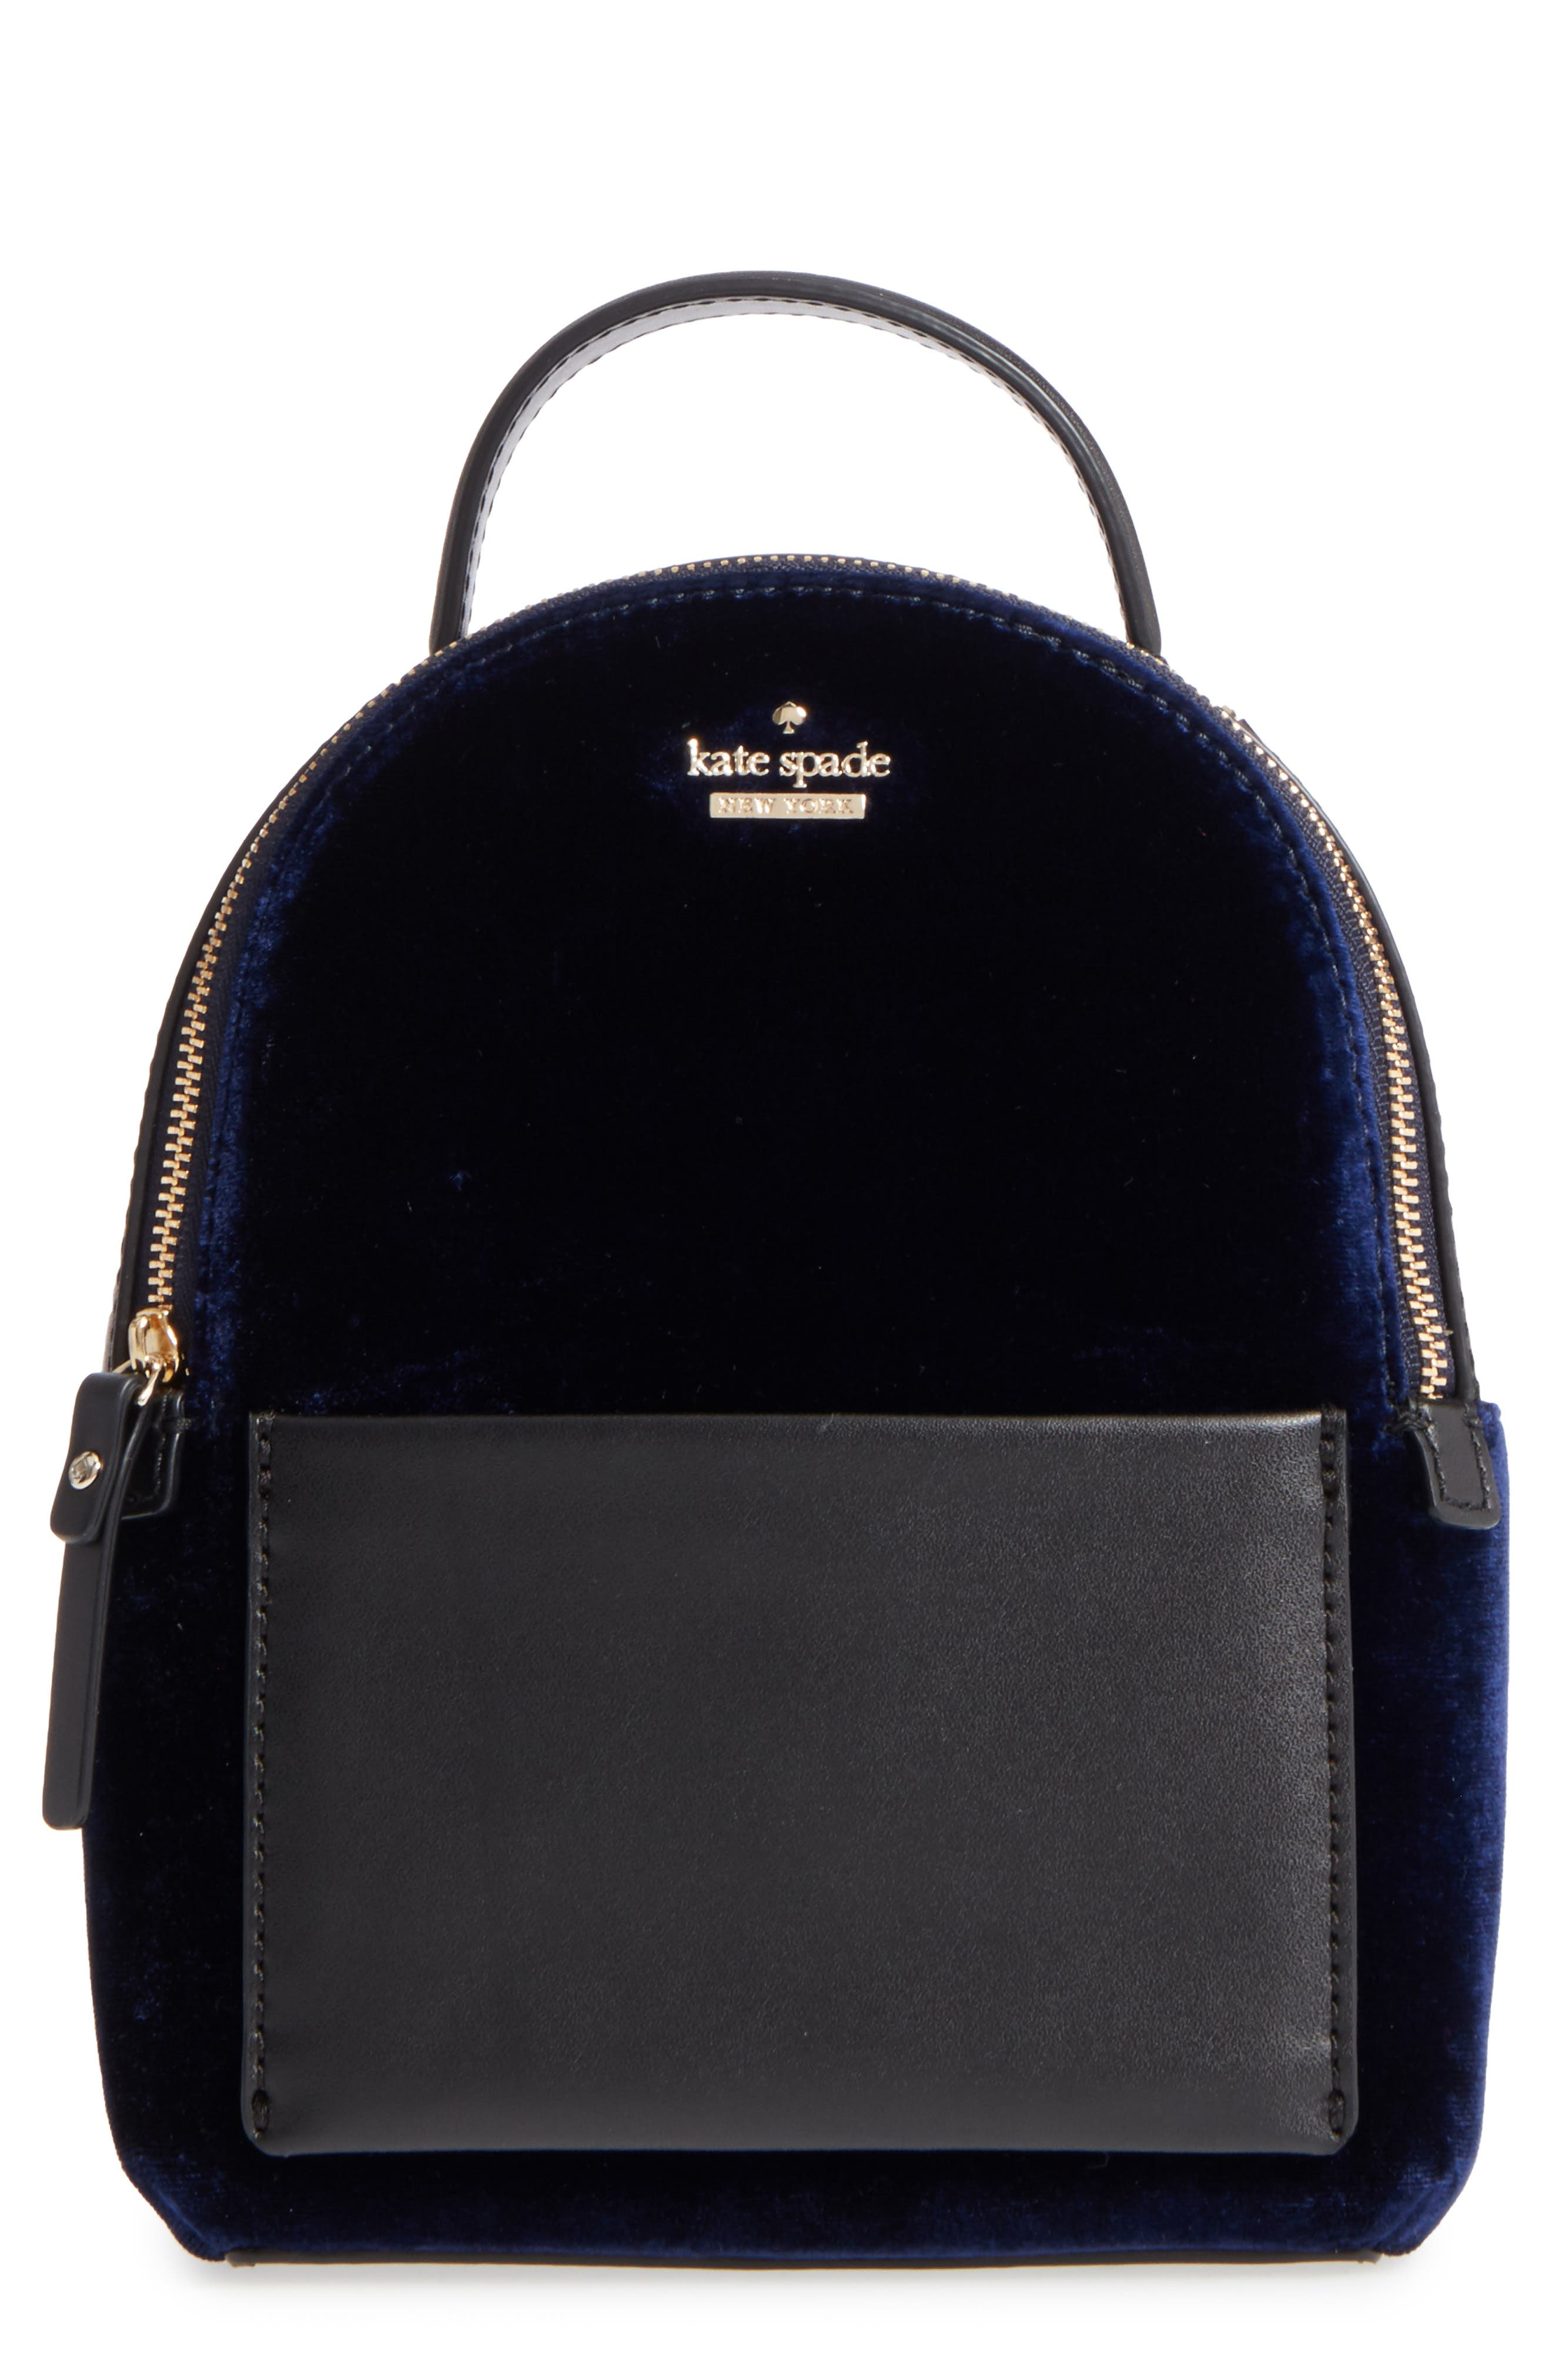 watson lane velvet merry convertible backpack,                             Main thumbnail 2, color,